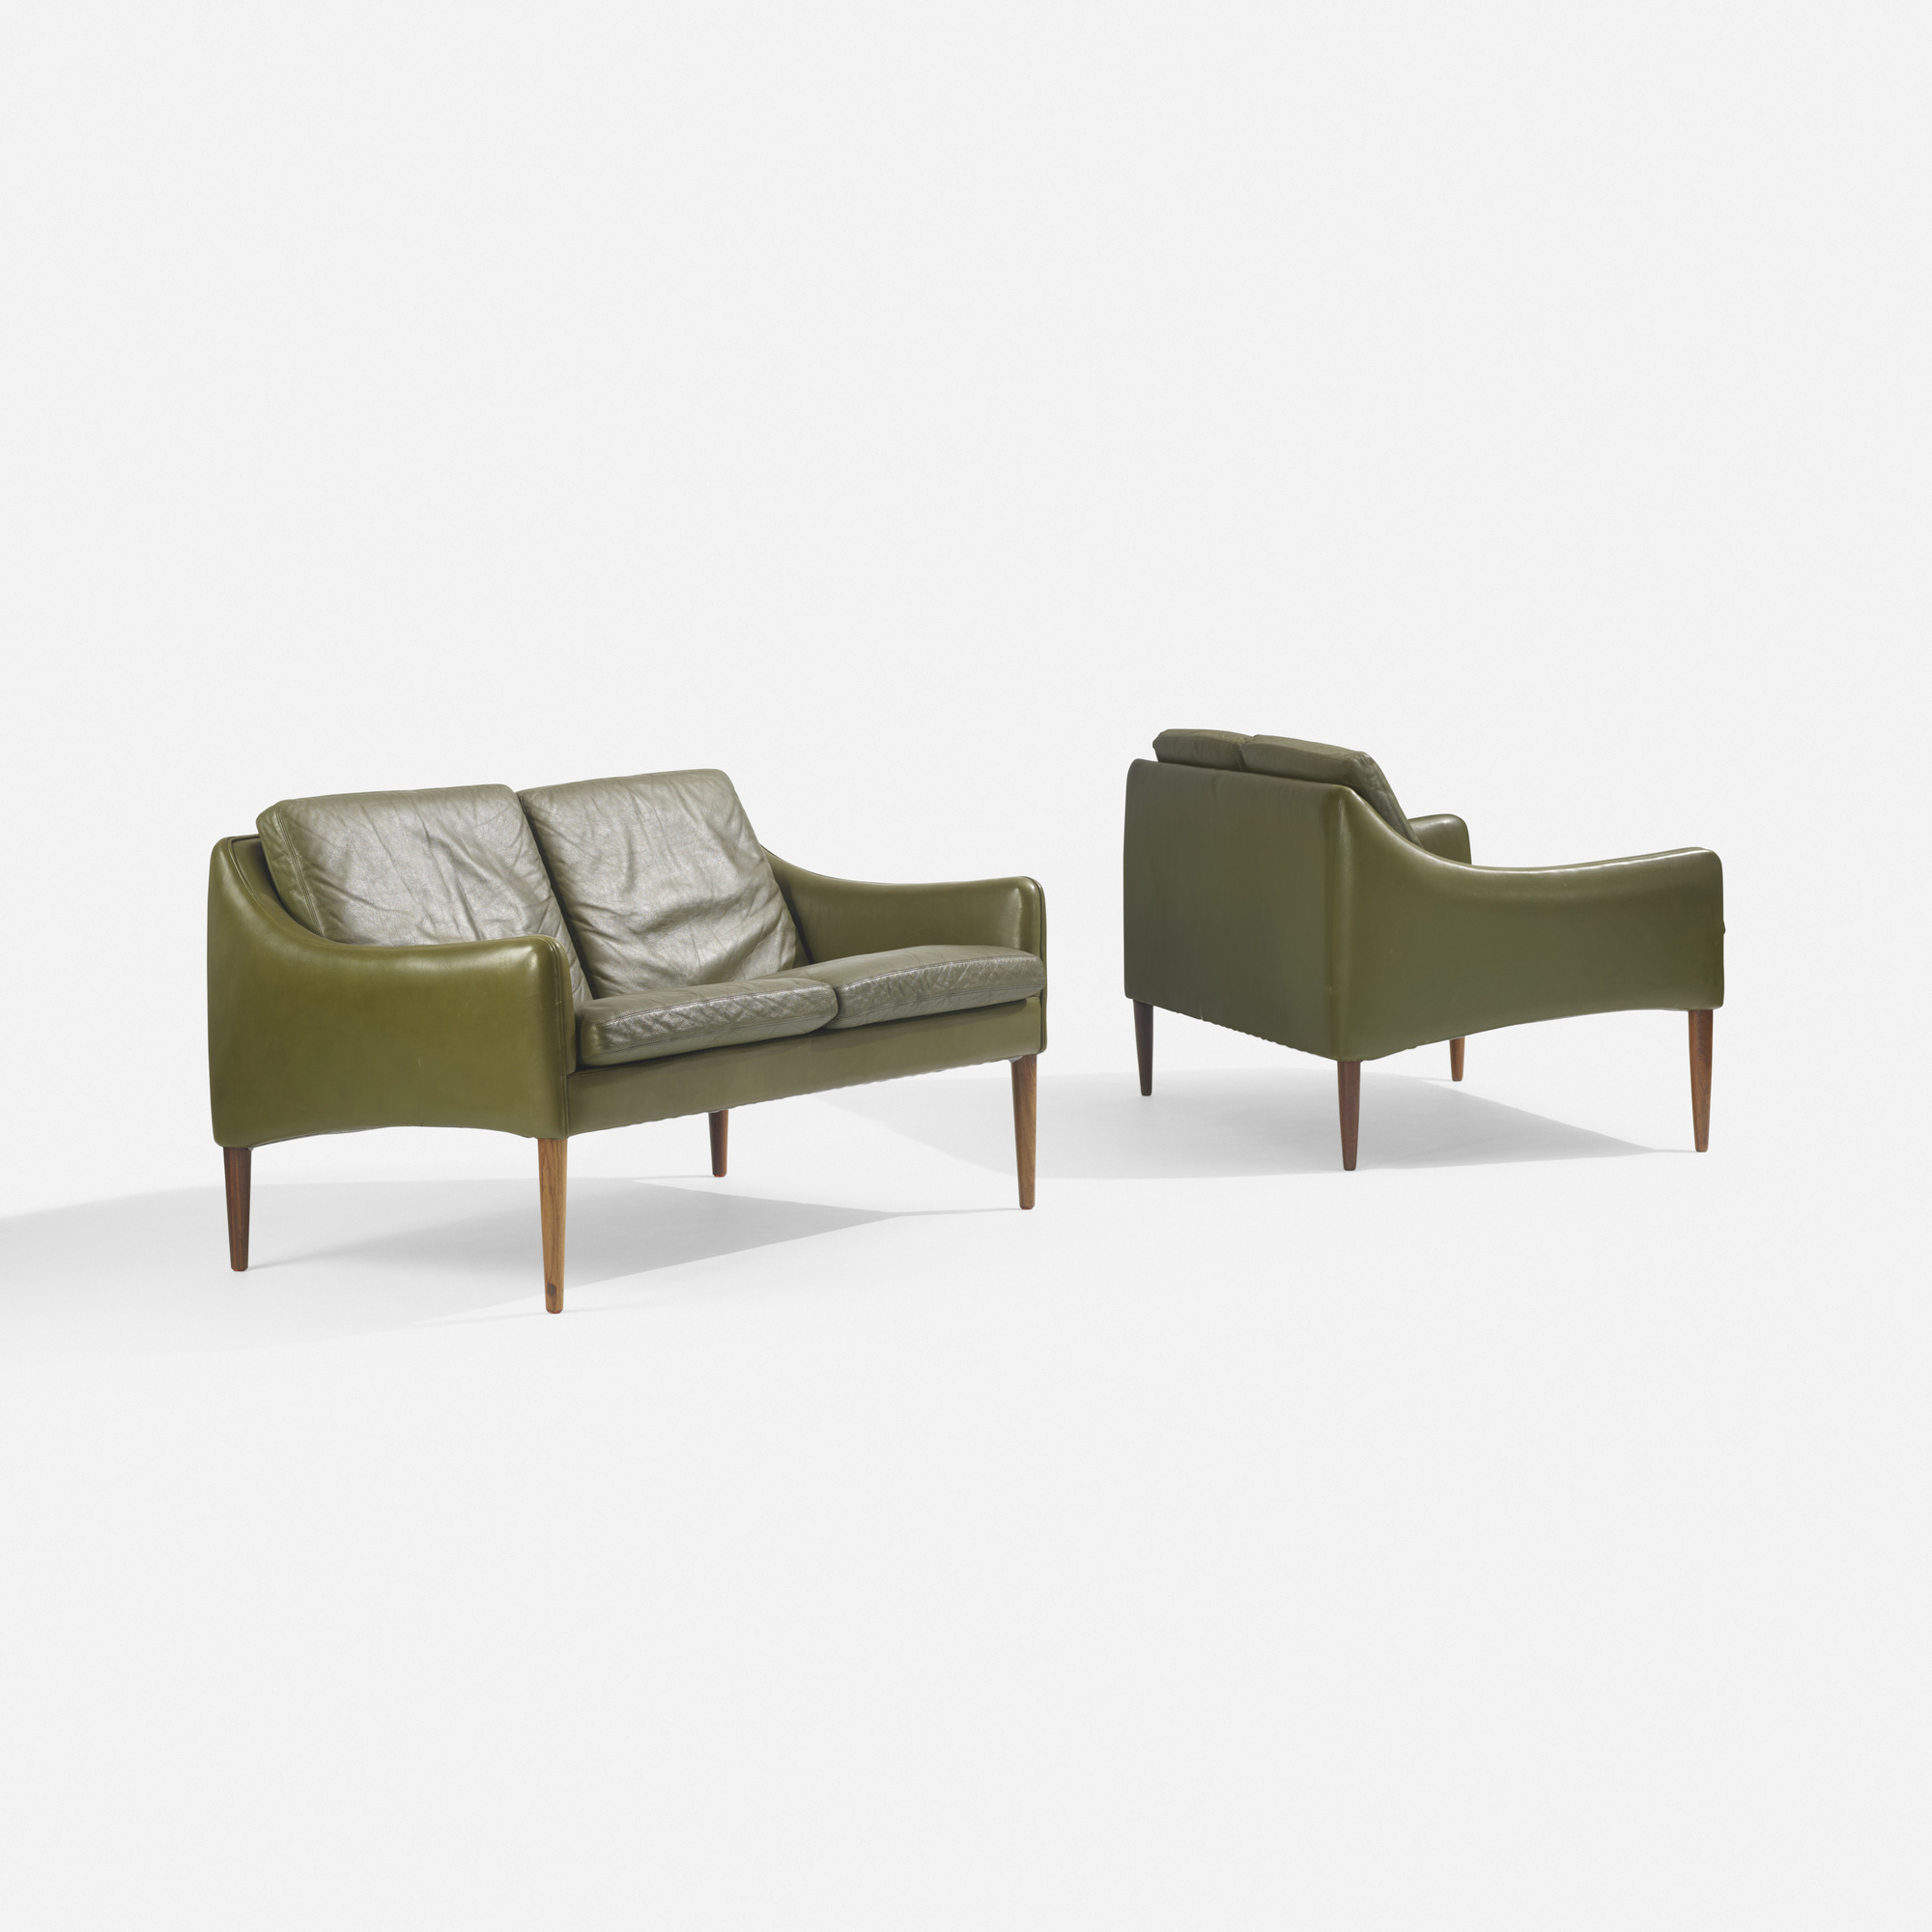 186: Hans Olsen / settees model 800/2, pair (2 of 3)